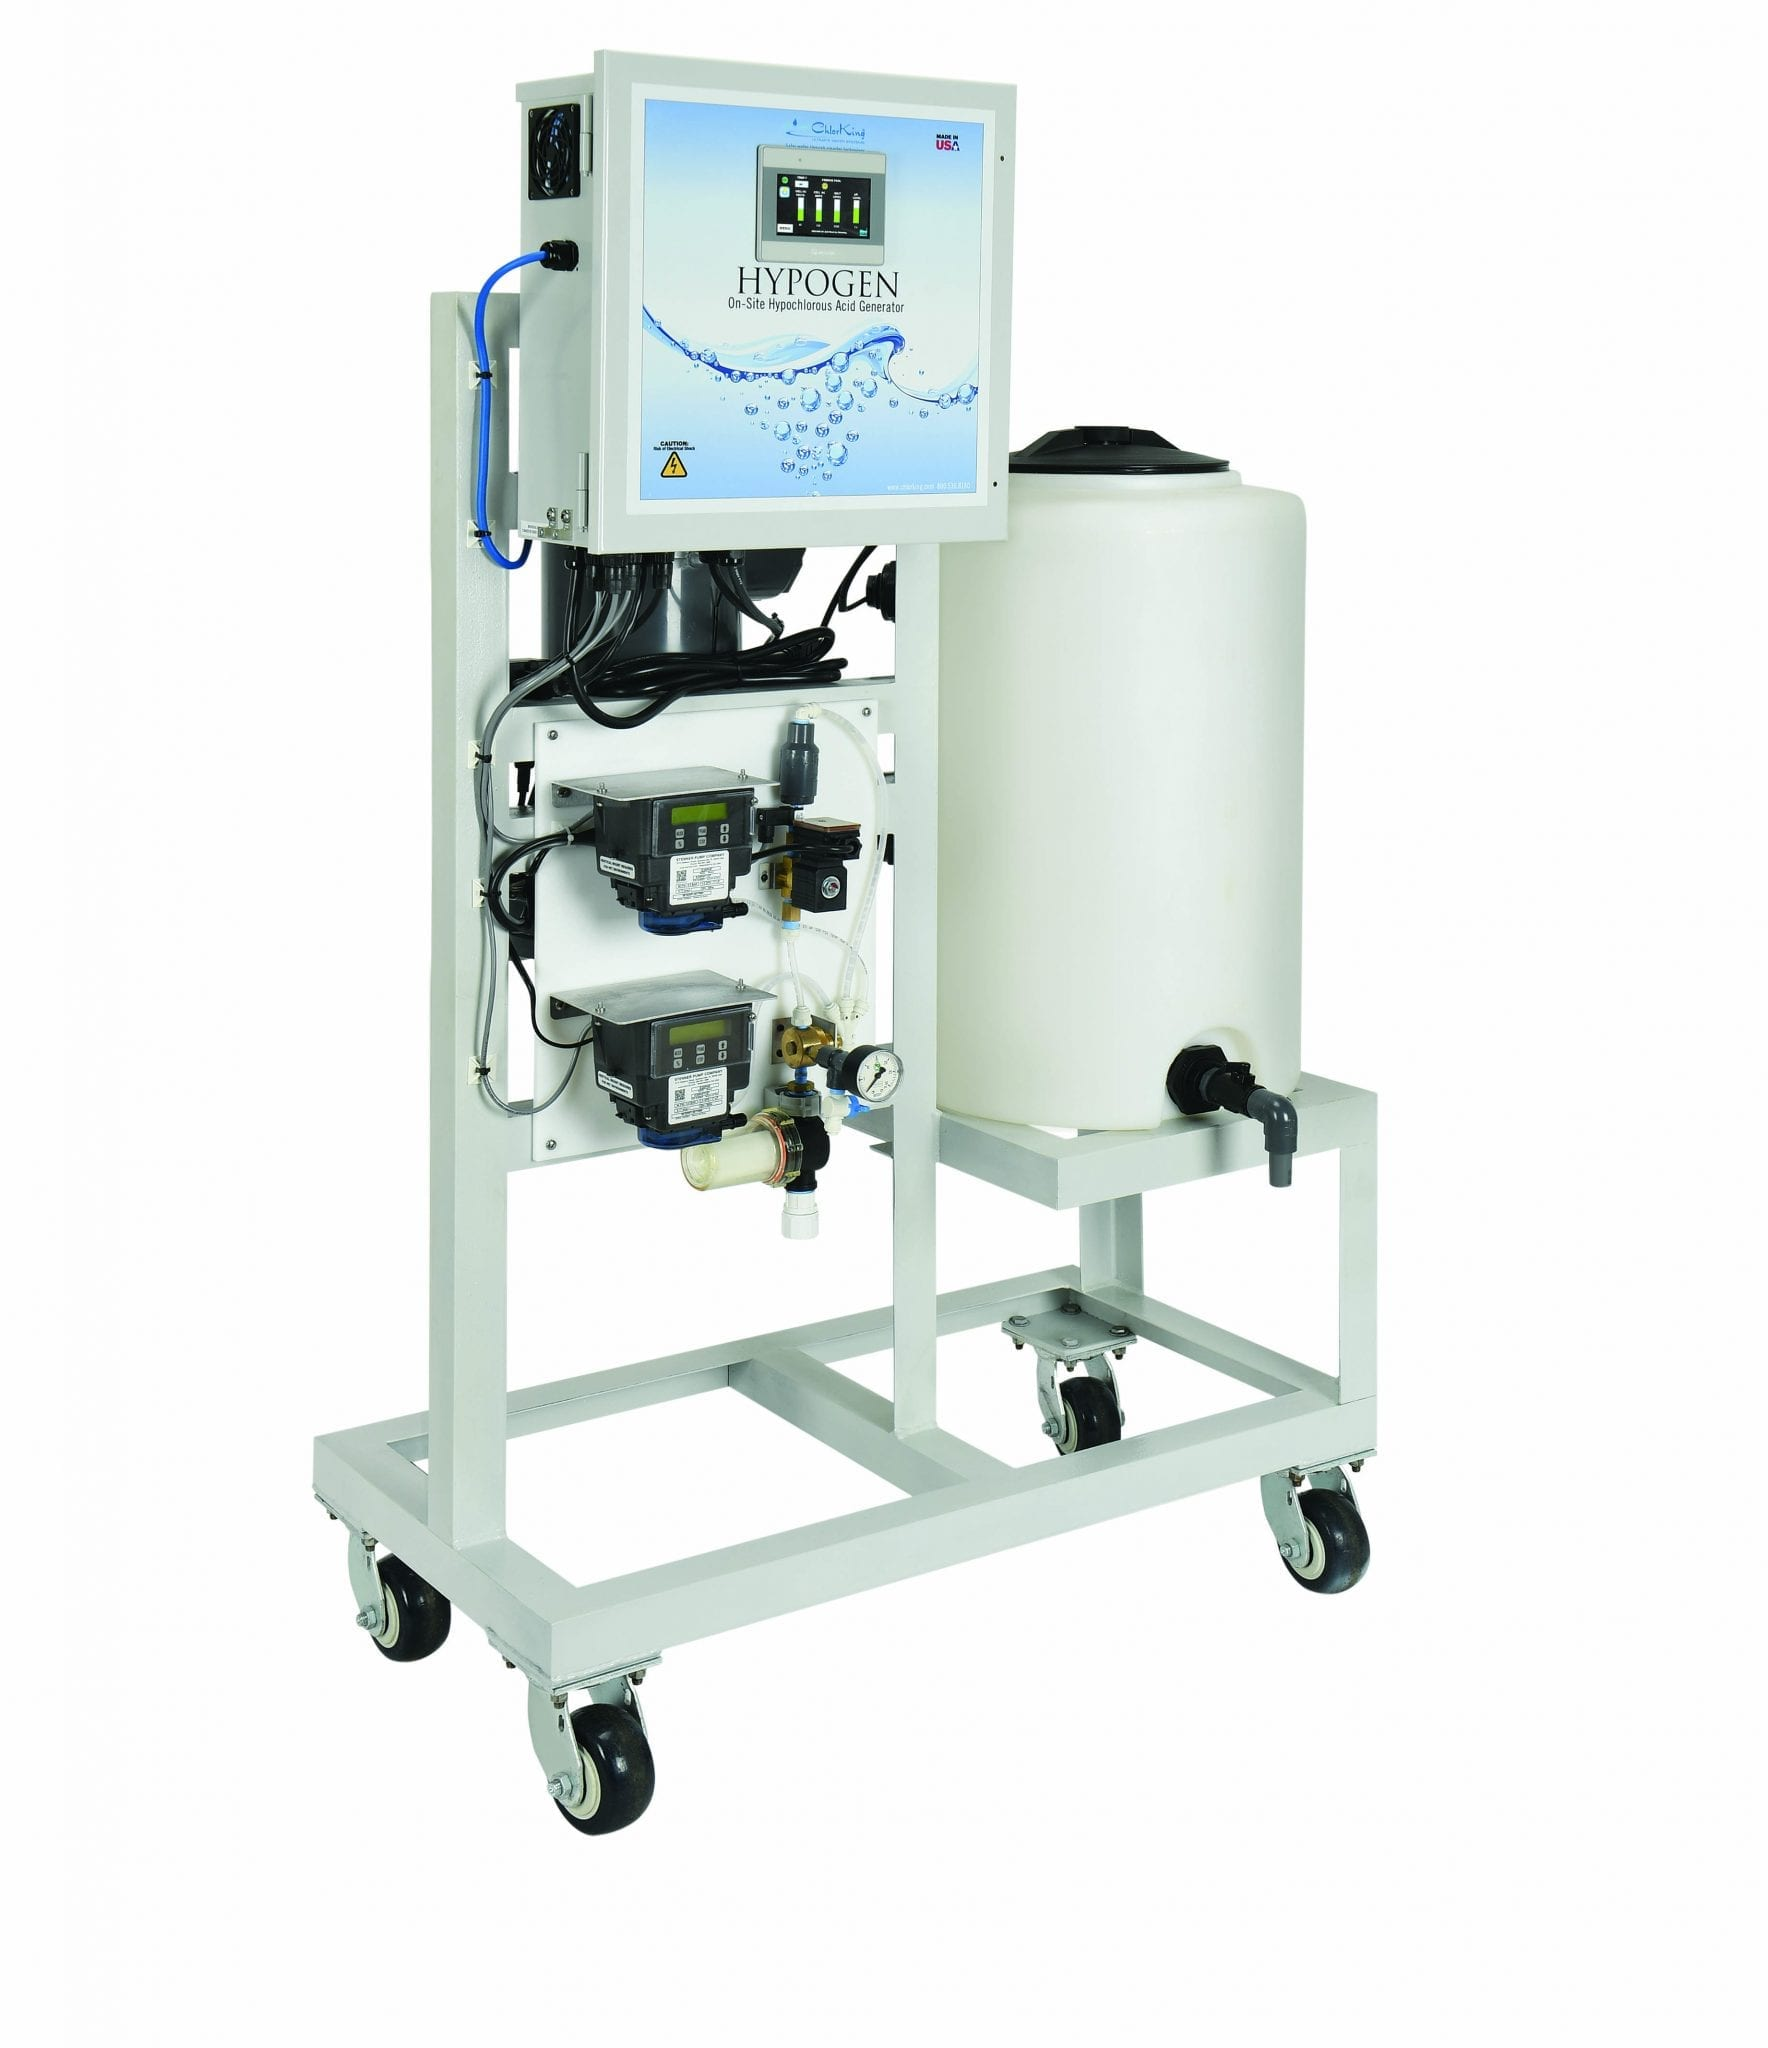 Image: The ChlorKing HYPOGEN hypochlorous acid generator water treatment system - ChlorKing